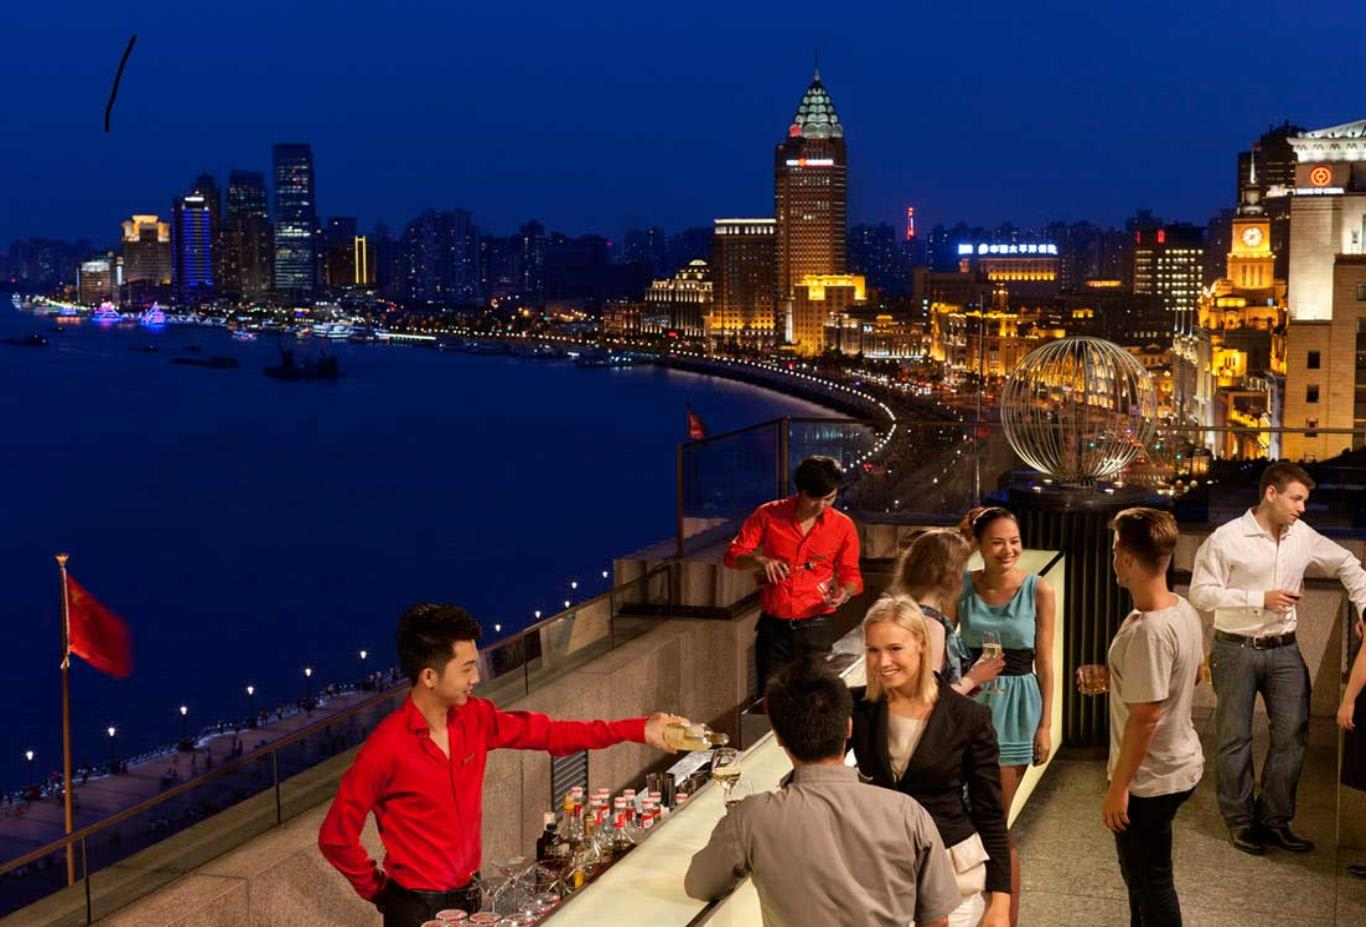 Sir-Ellys-Terrace-the-Bund-View